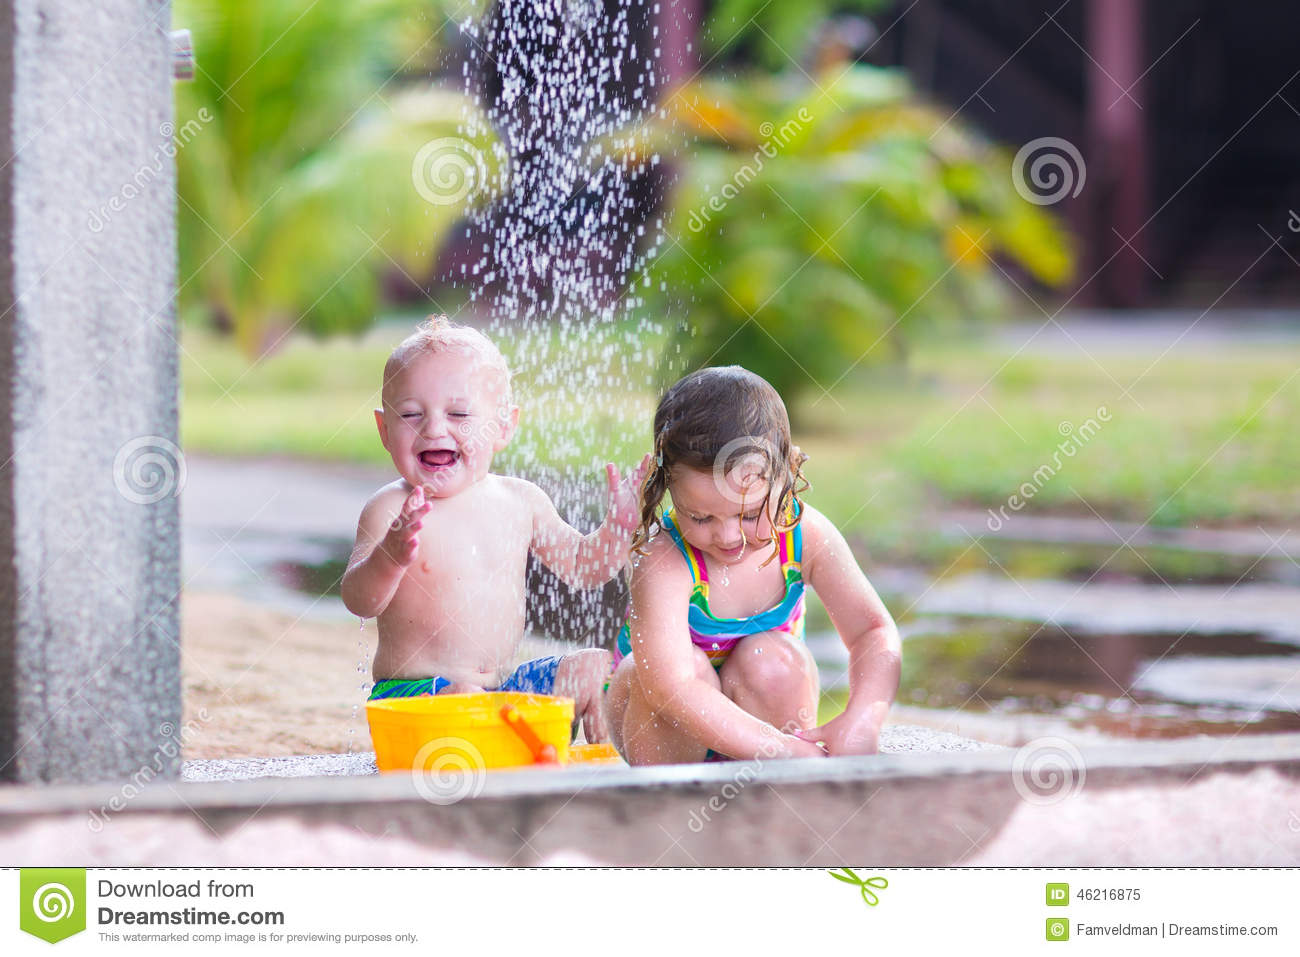 Children in shower